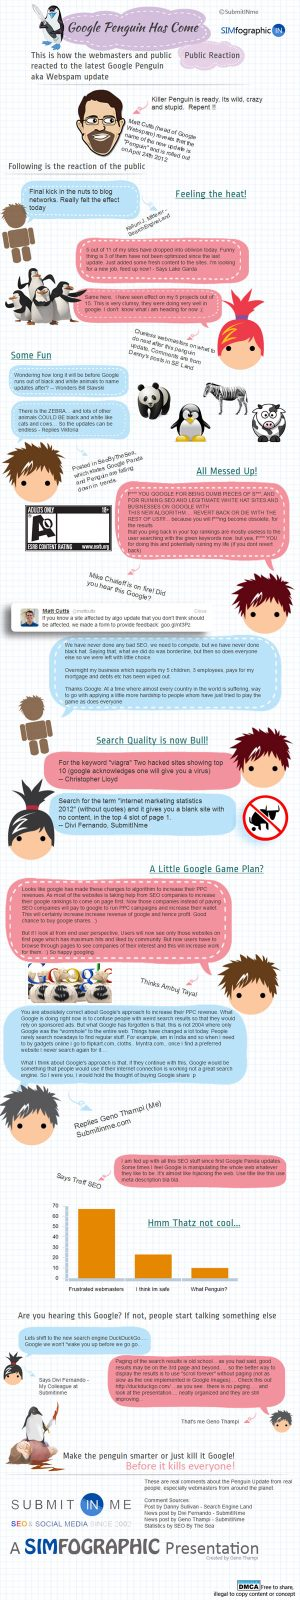 Google Penguin Update How did the public react: Infographic 36